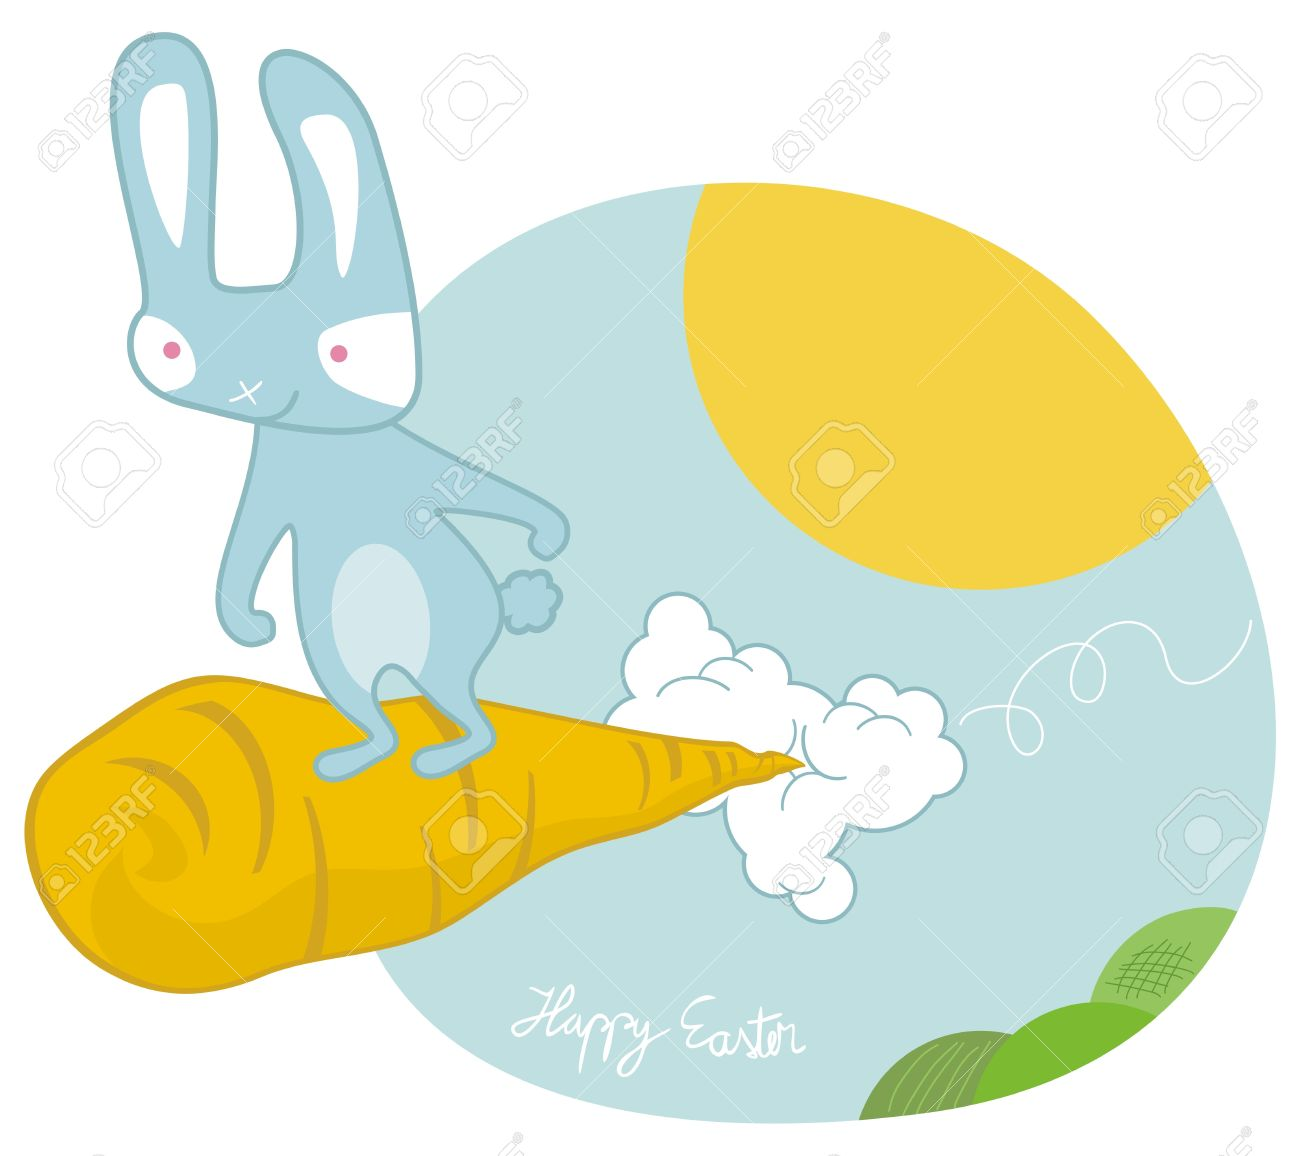 Sky Surfing Easter Bunny On A Giant Carrot Royalty Free Cliparts.